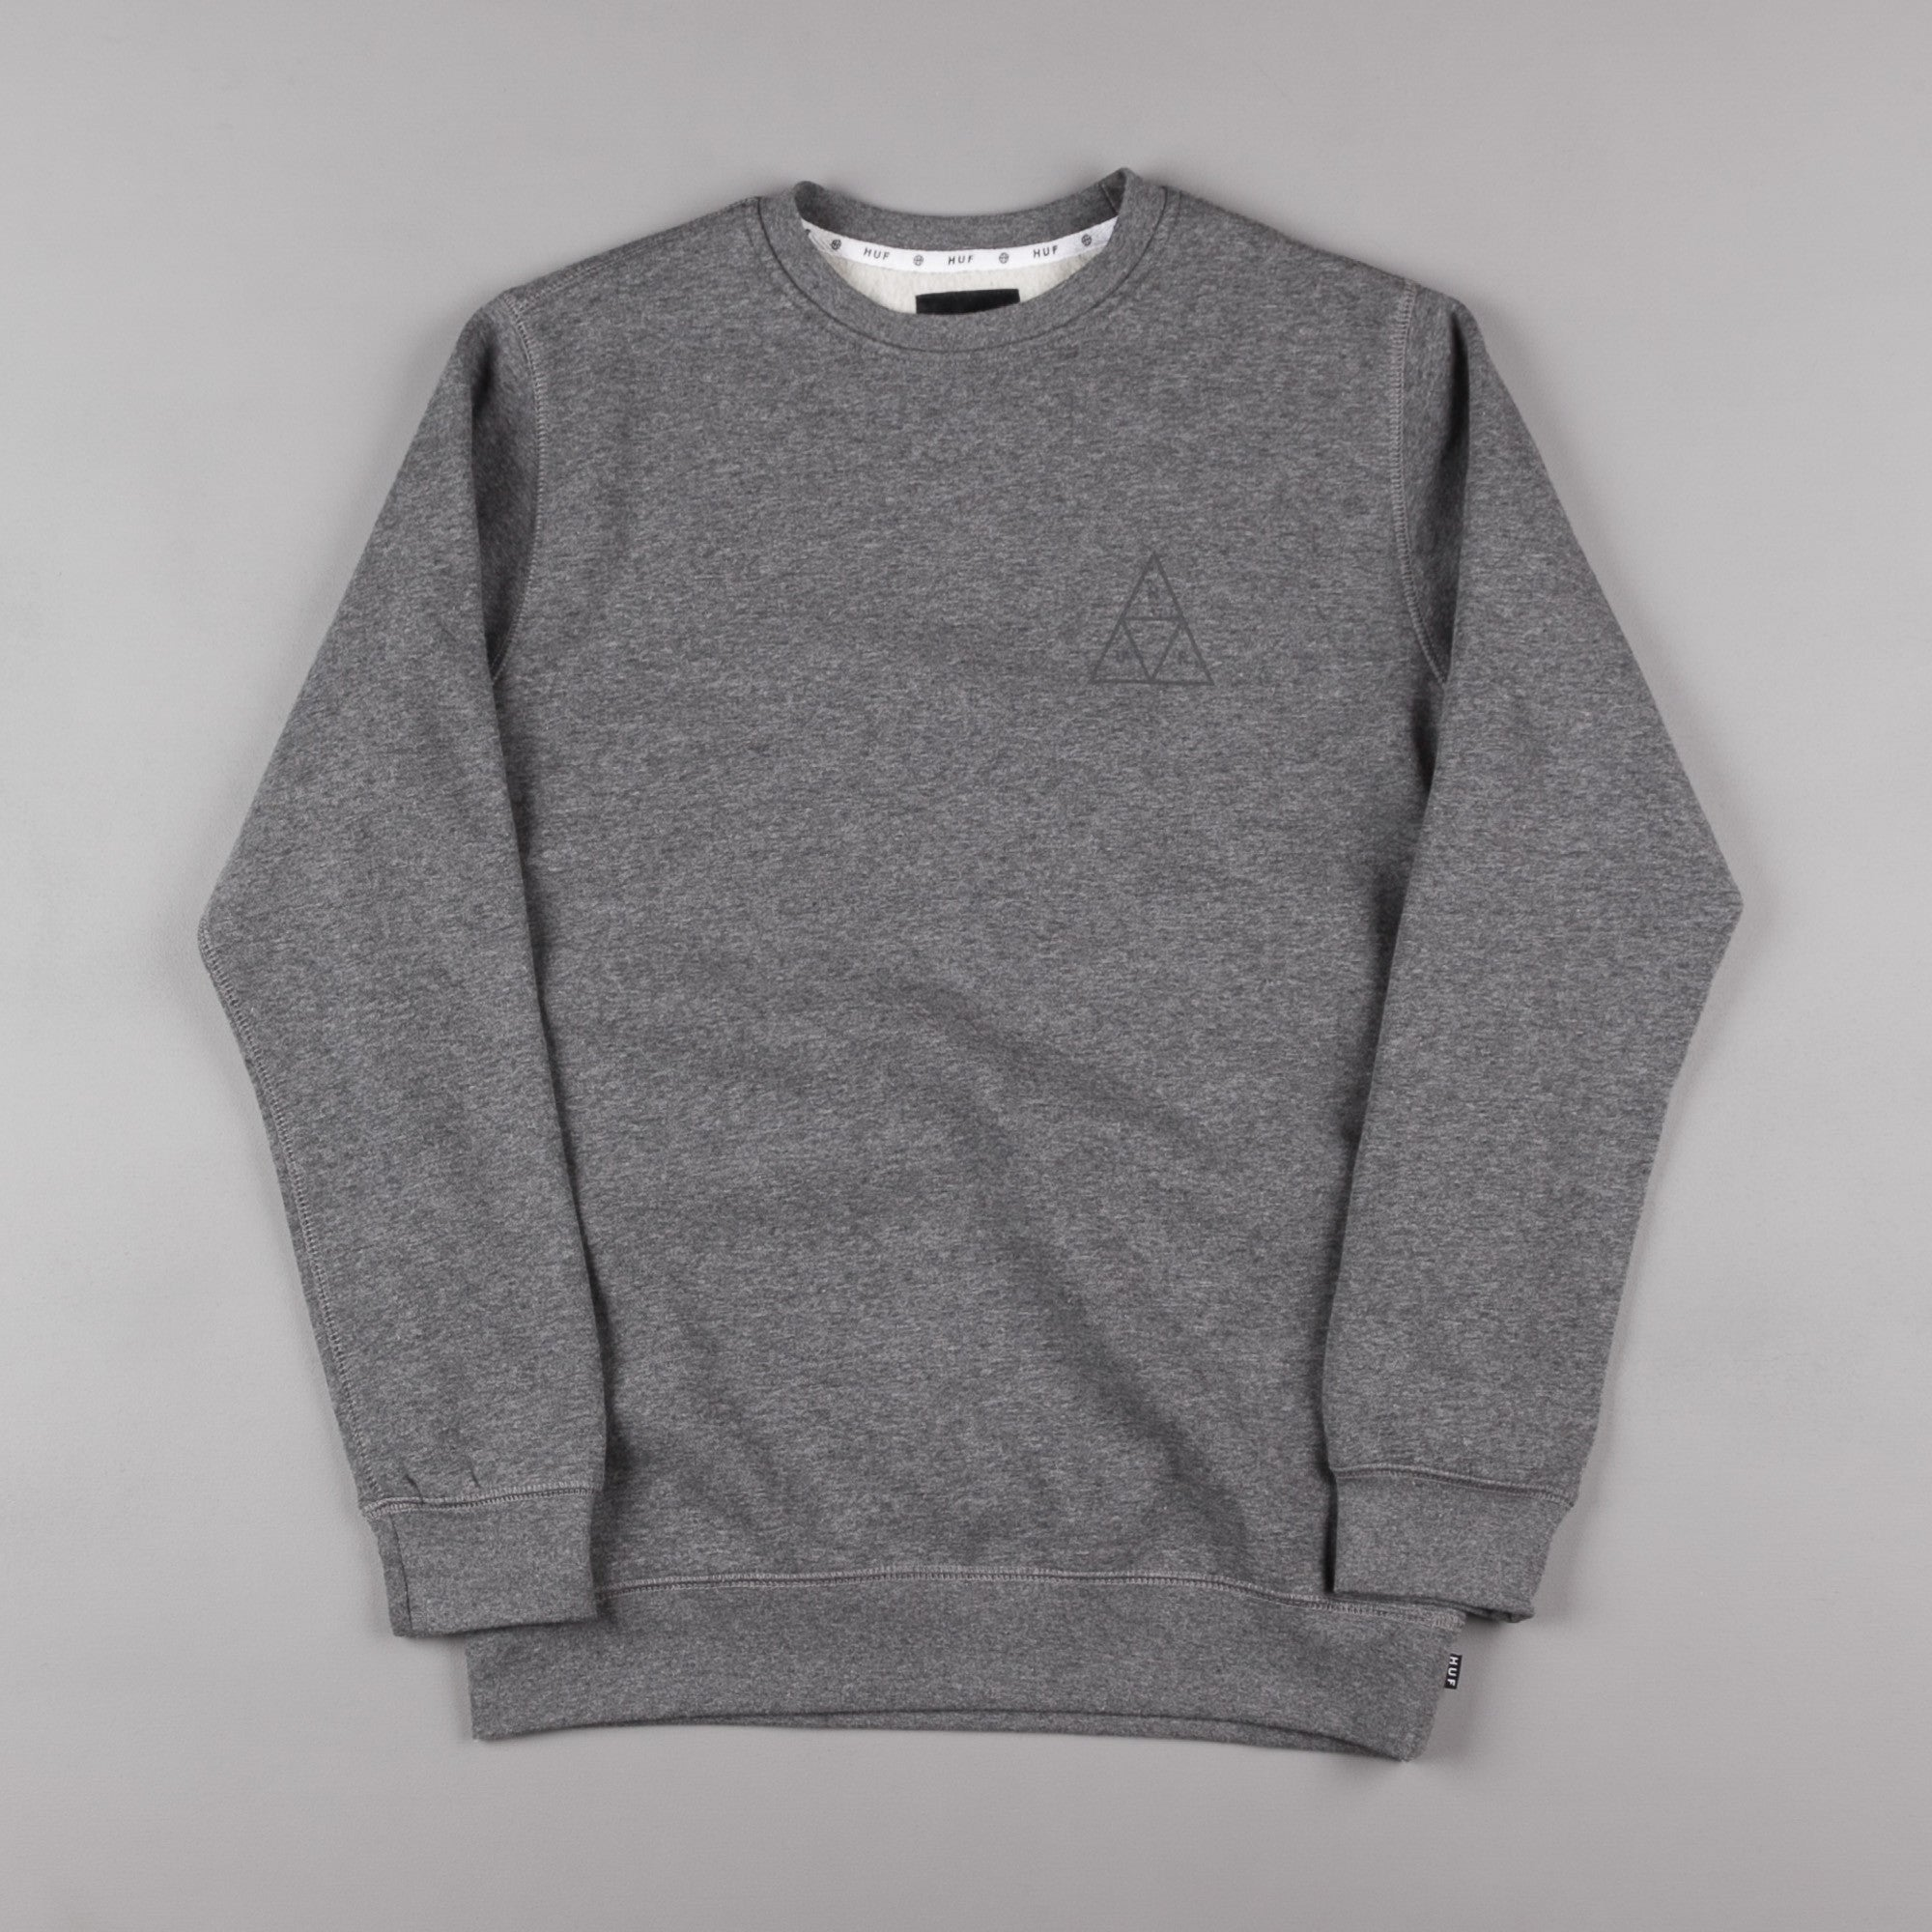 HUF Triple Triangle Crewneck Sweatshirt - Grey Heather